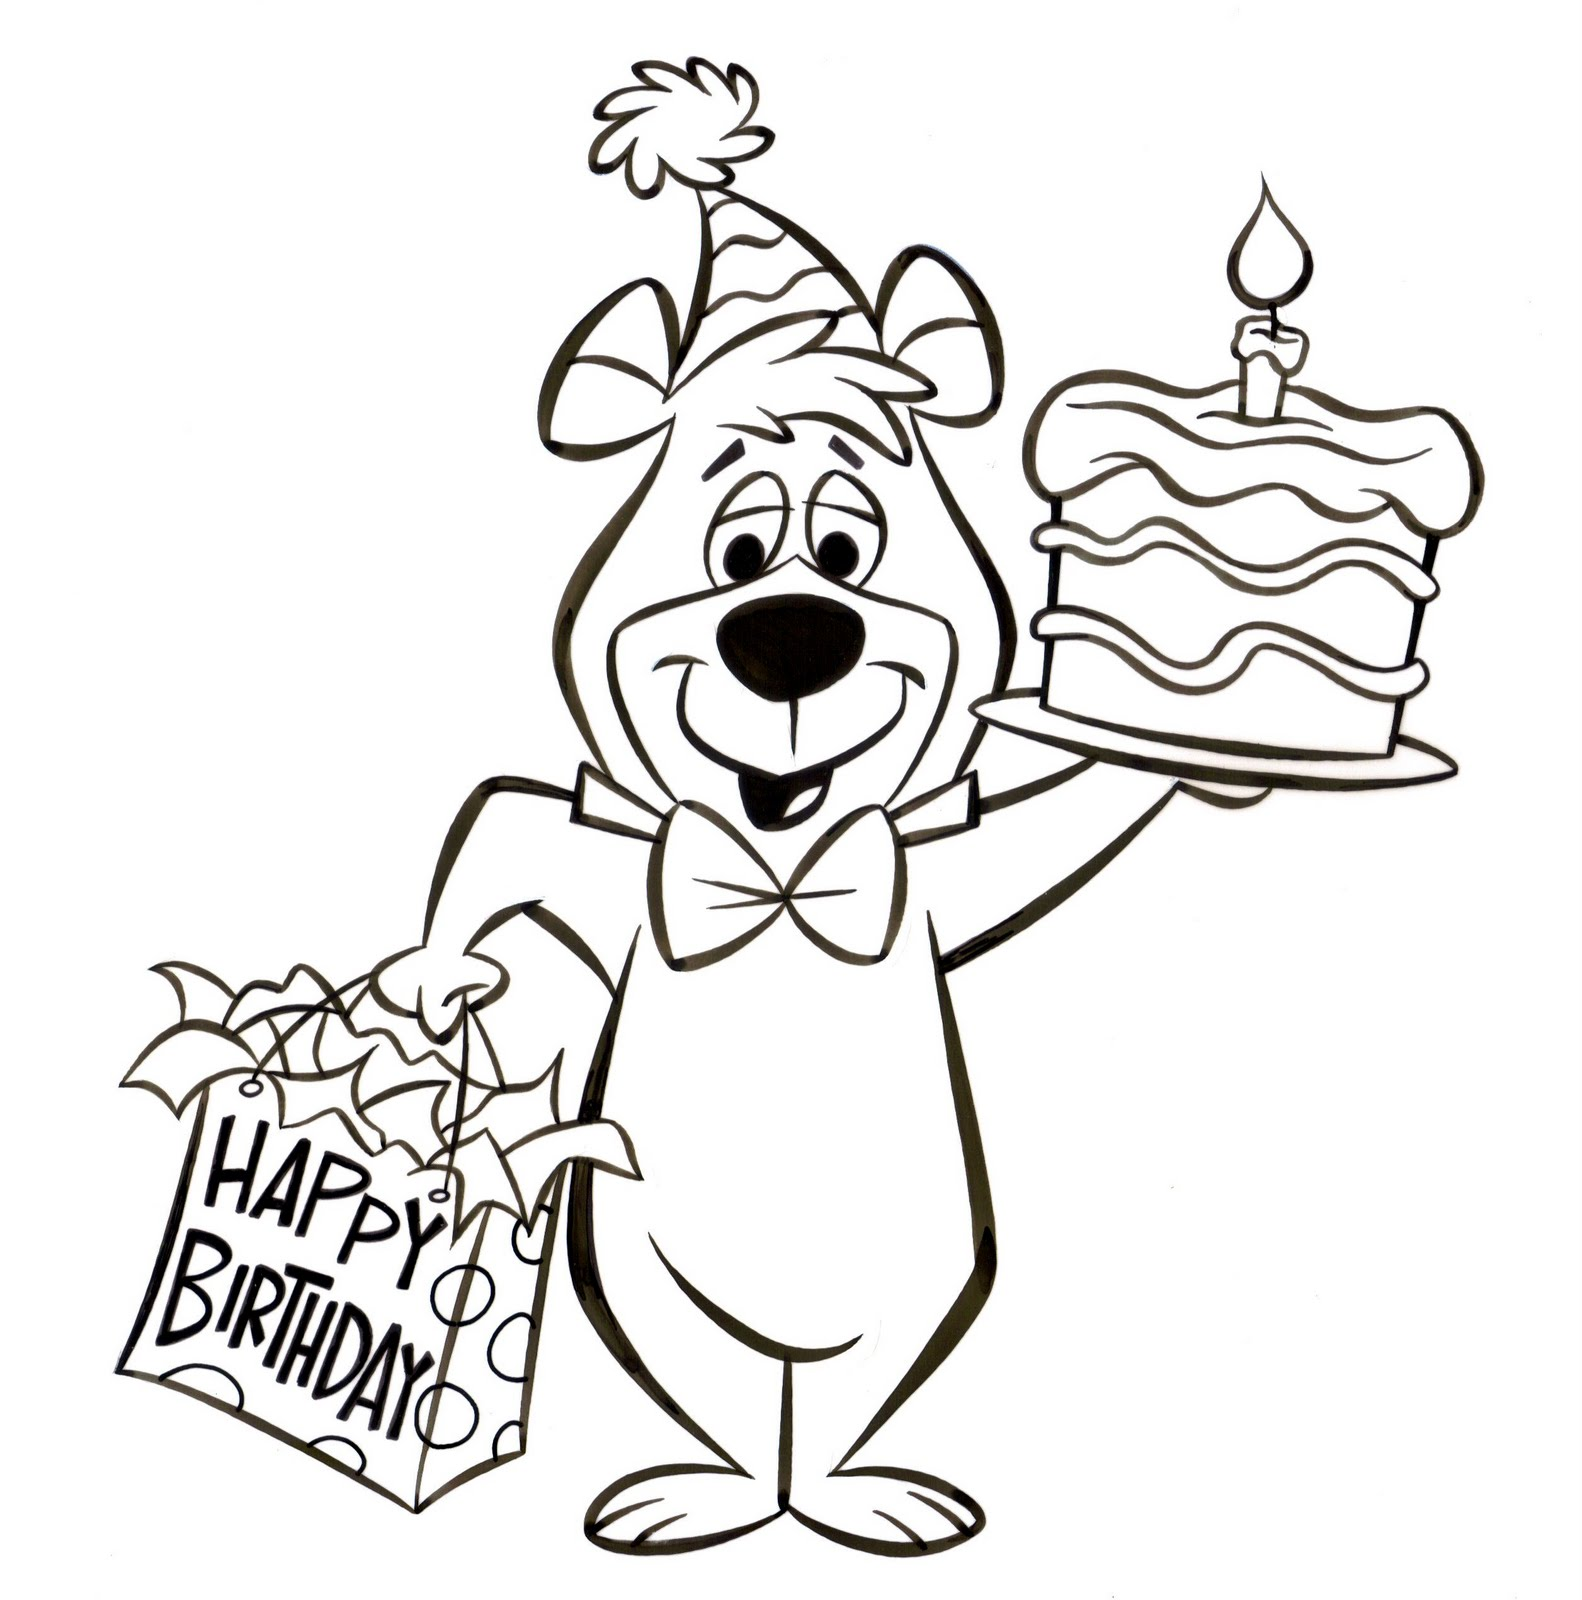 Patrick Owsley Cartoon Art and More YOGI BEAR BIRTHDAY ART